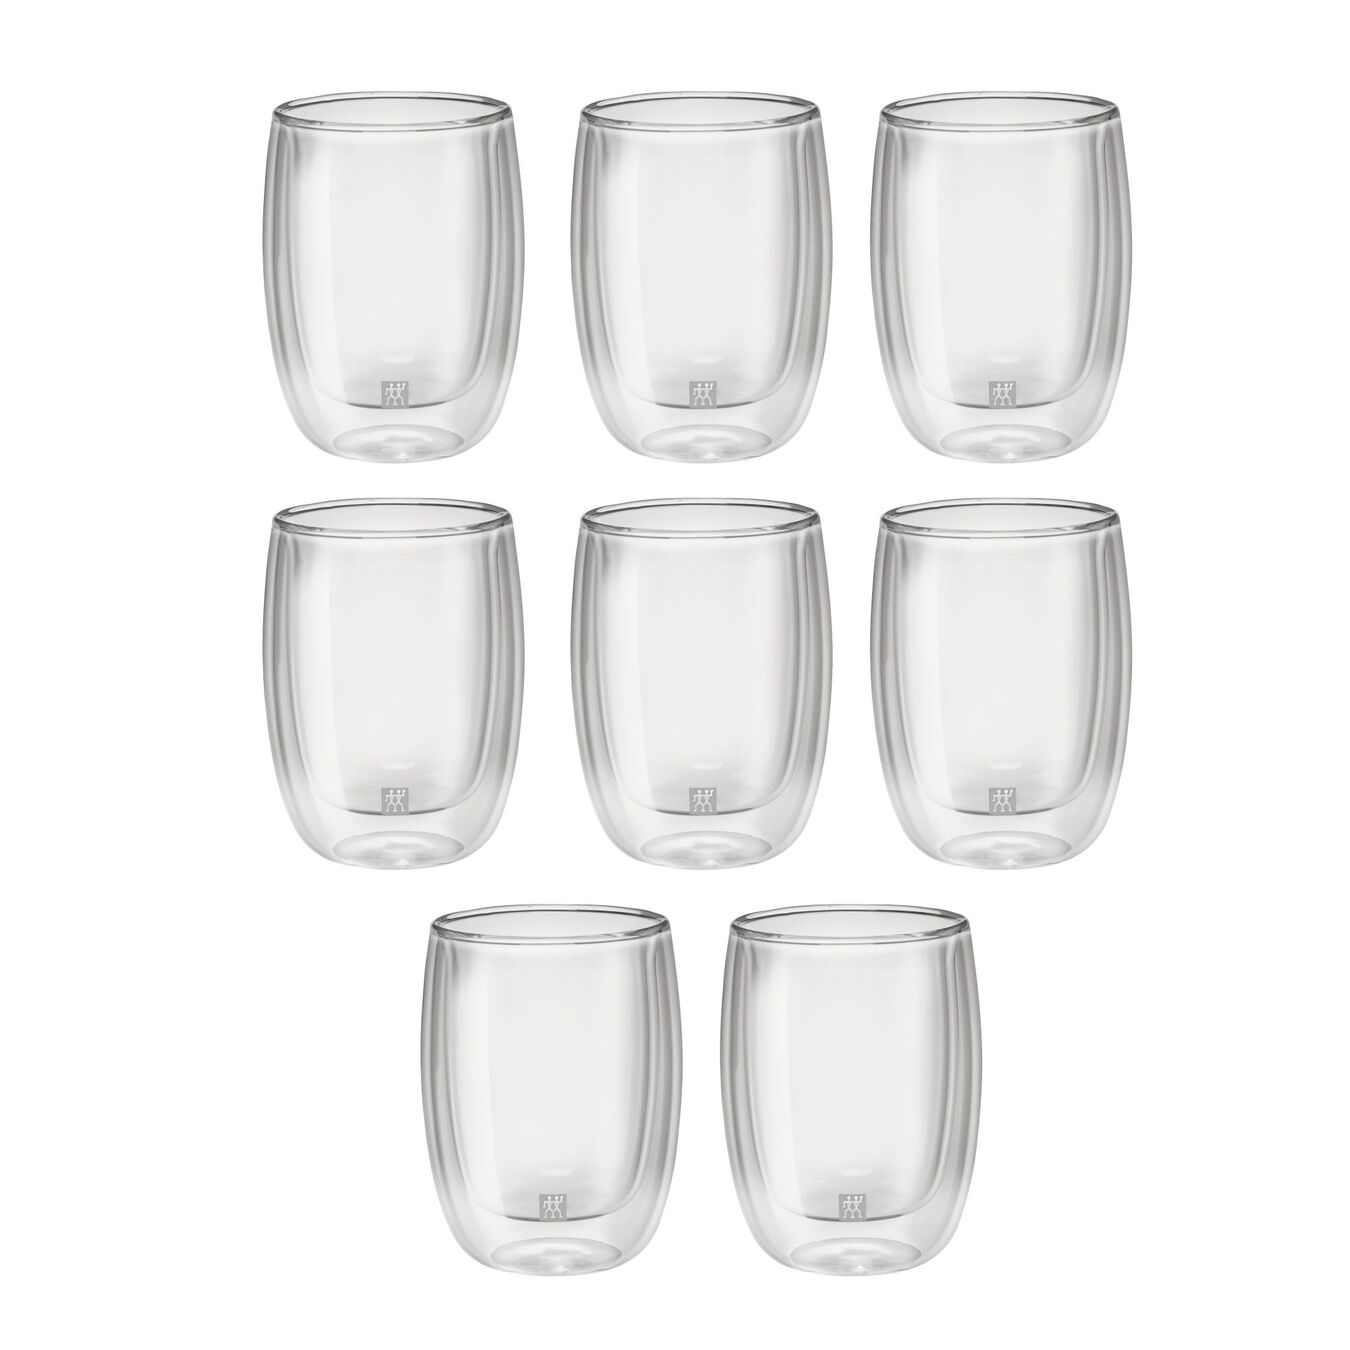 8 Piece Coffee Glass Set - Value Pack,,large 3